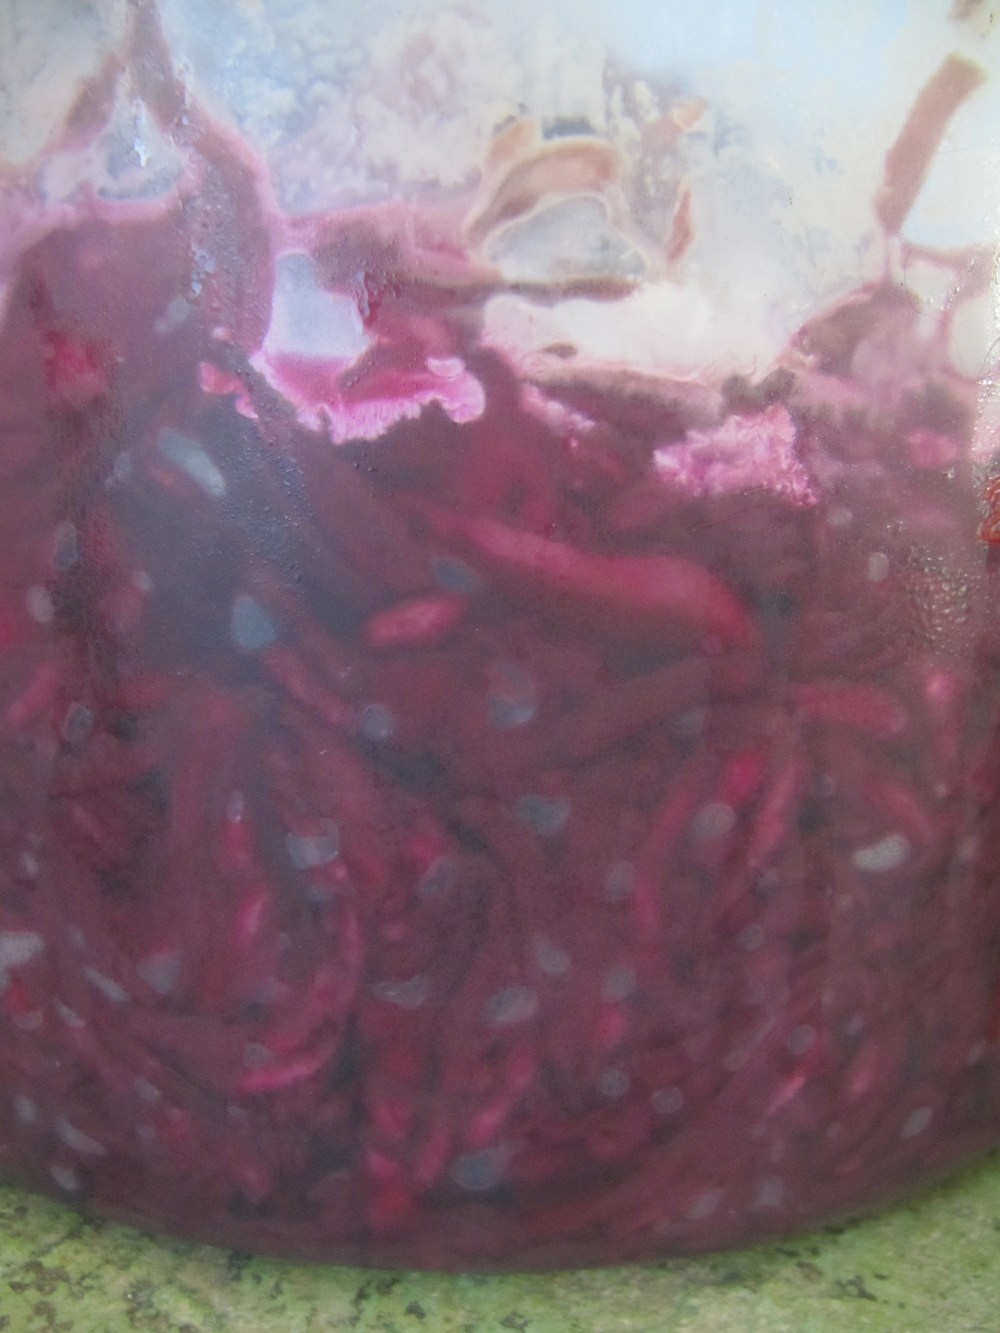 mold and yeast on beet kraut